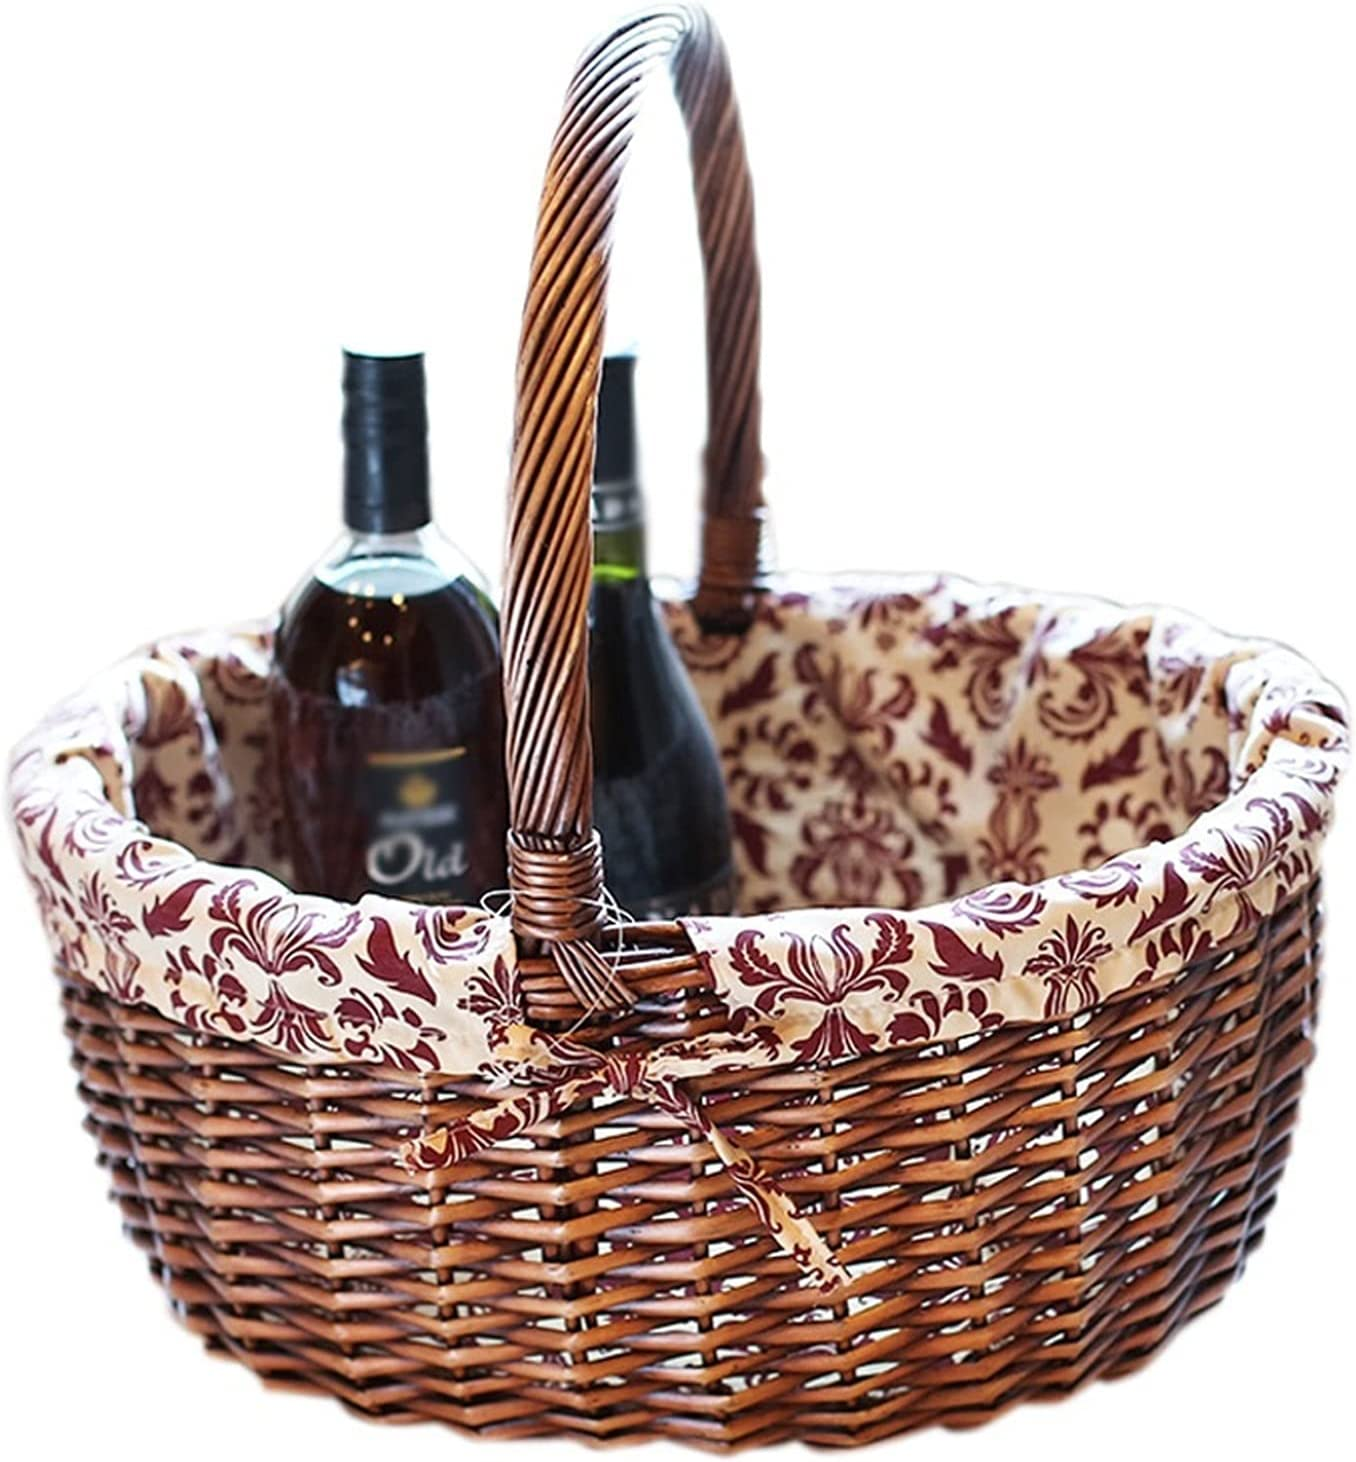 Classic lxm Fruit Basket Rattan Storage overseas Home P Gift Bamboo